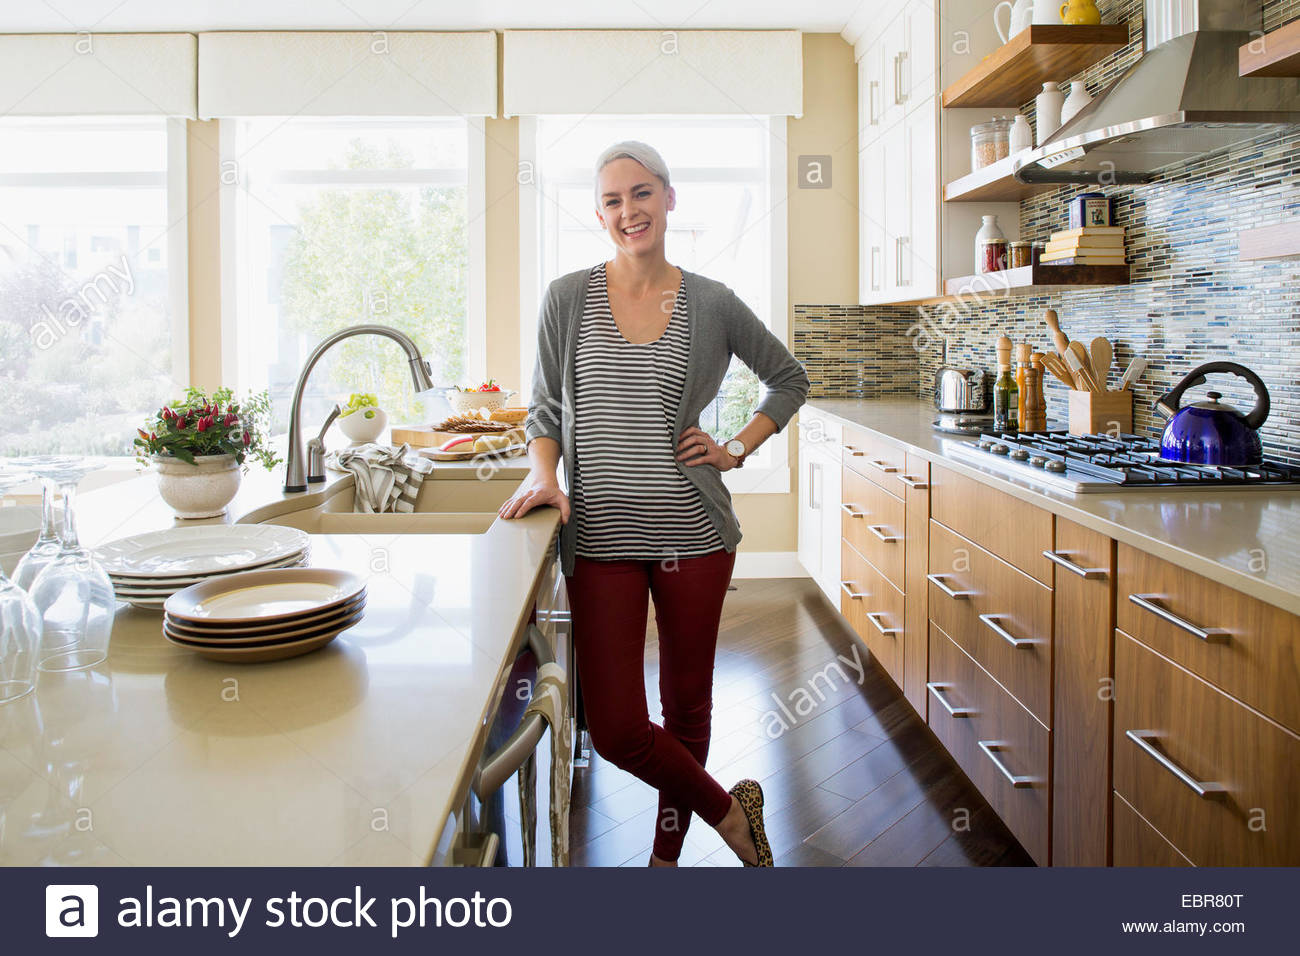 Portrait of smiling woman in kitchen Stock Photo